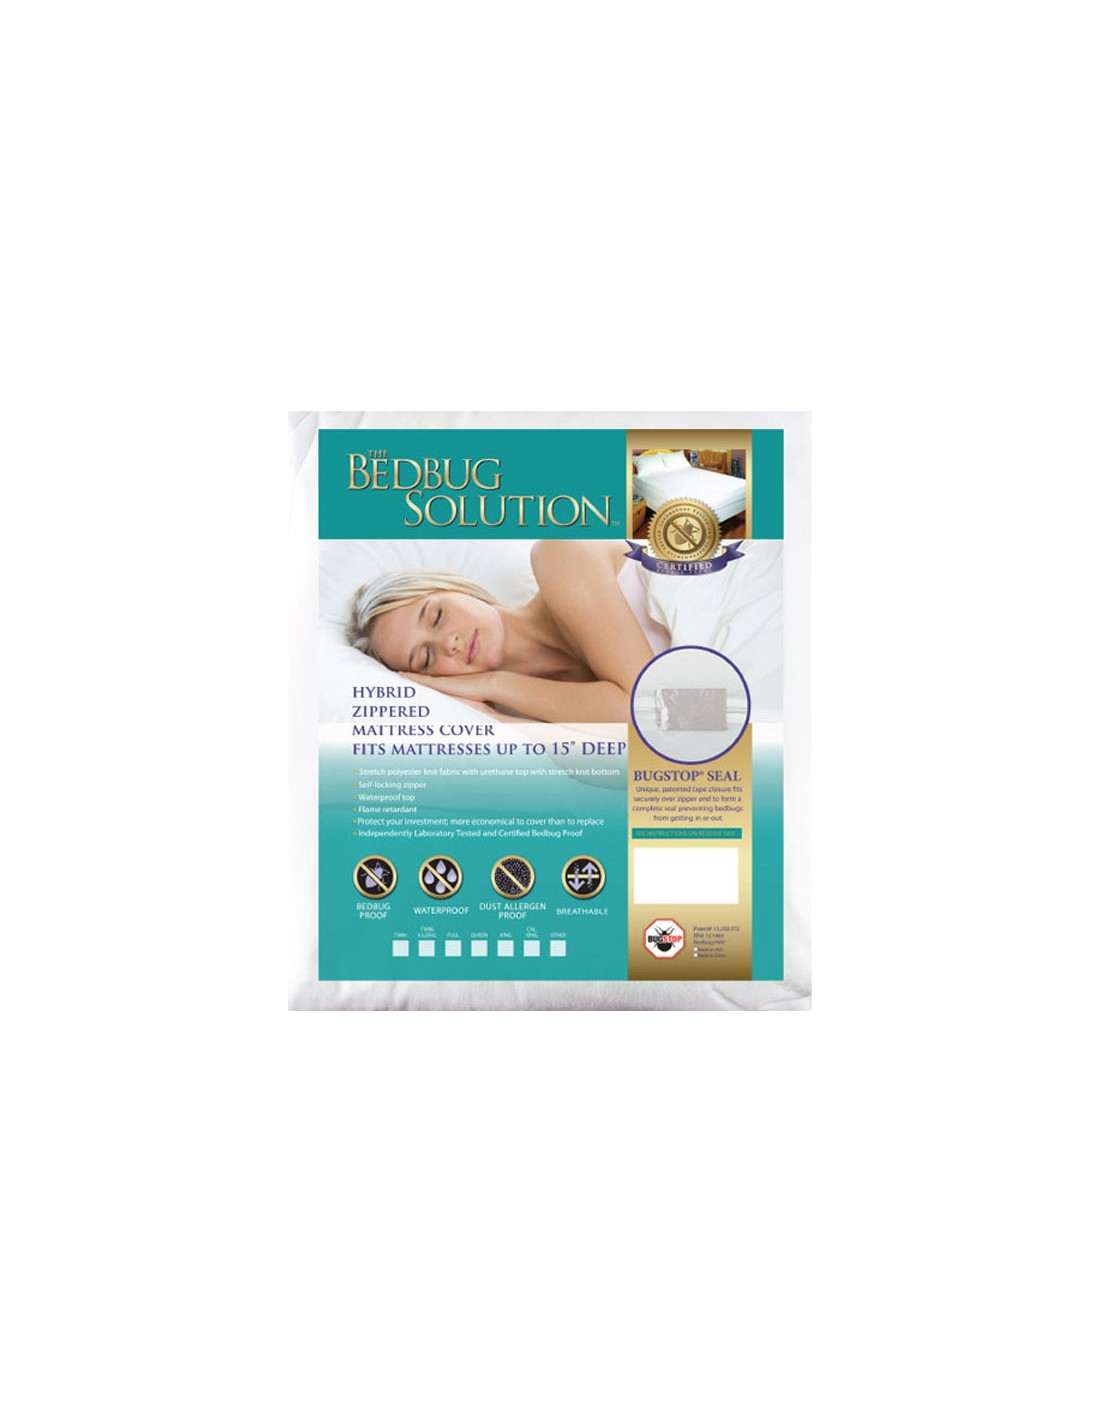 Full or Double Hybrid Mattress Cover 15 Inch Questions & Answers